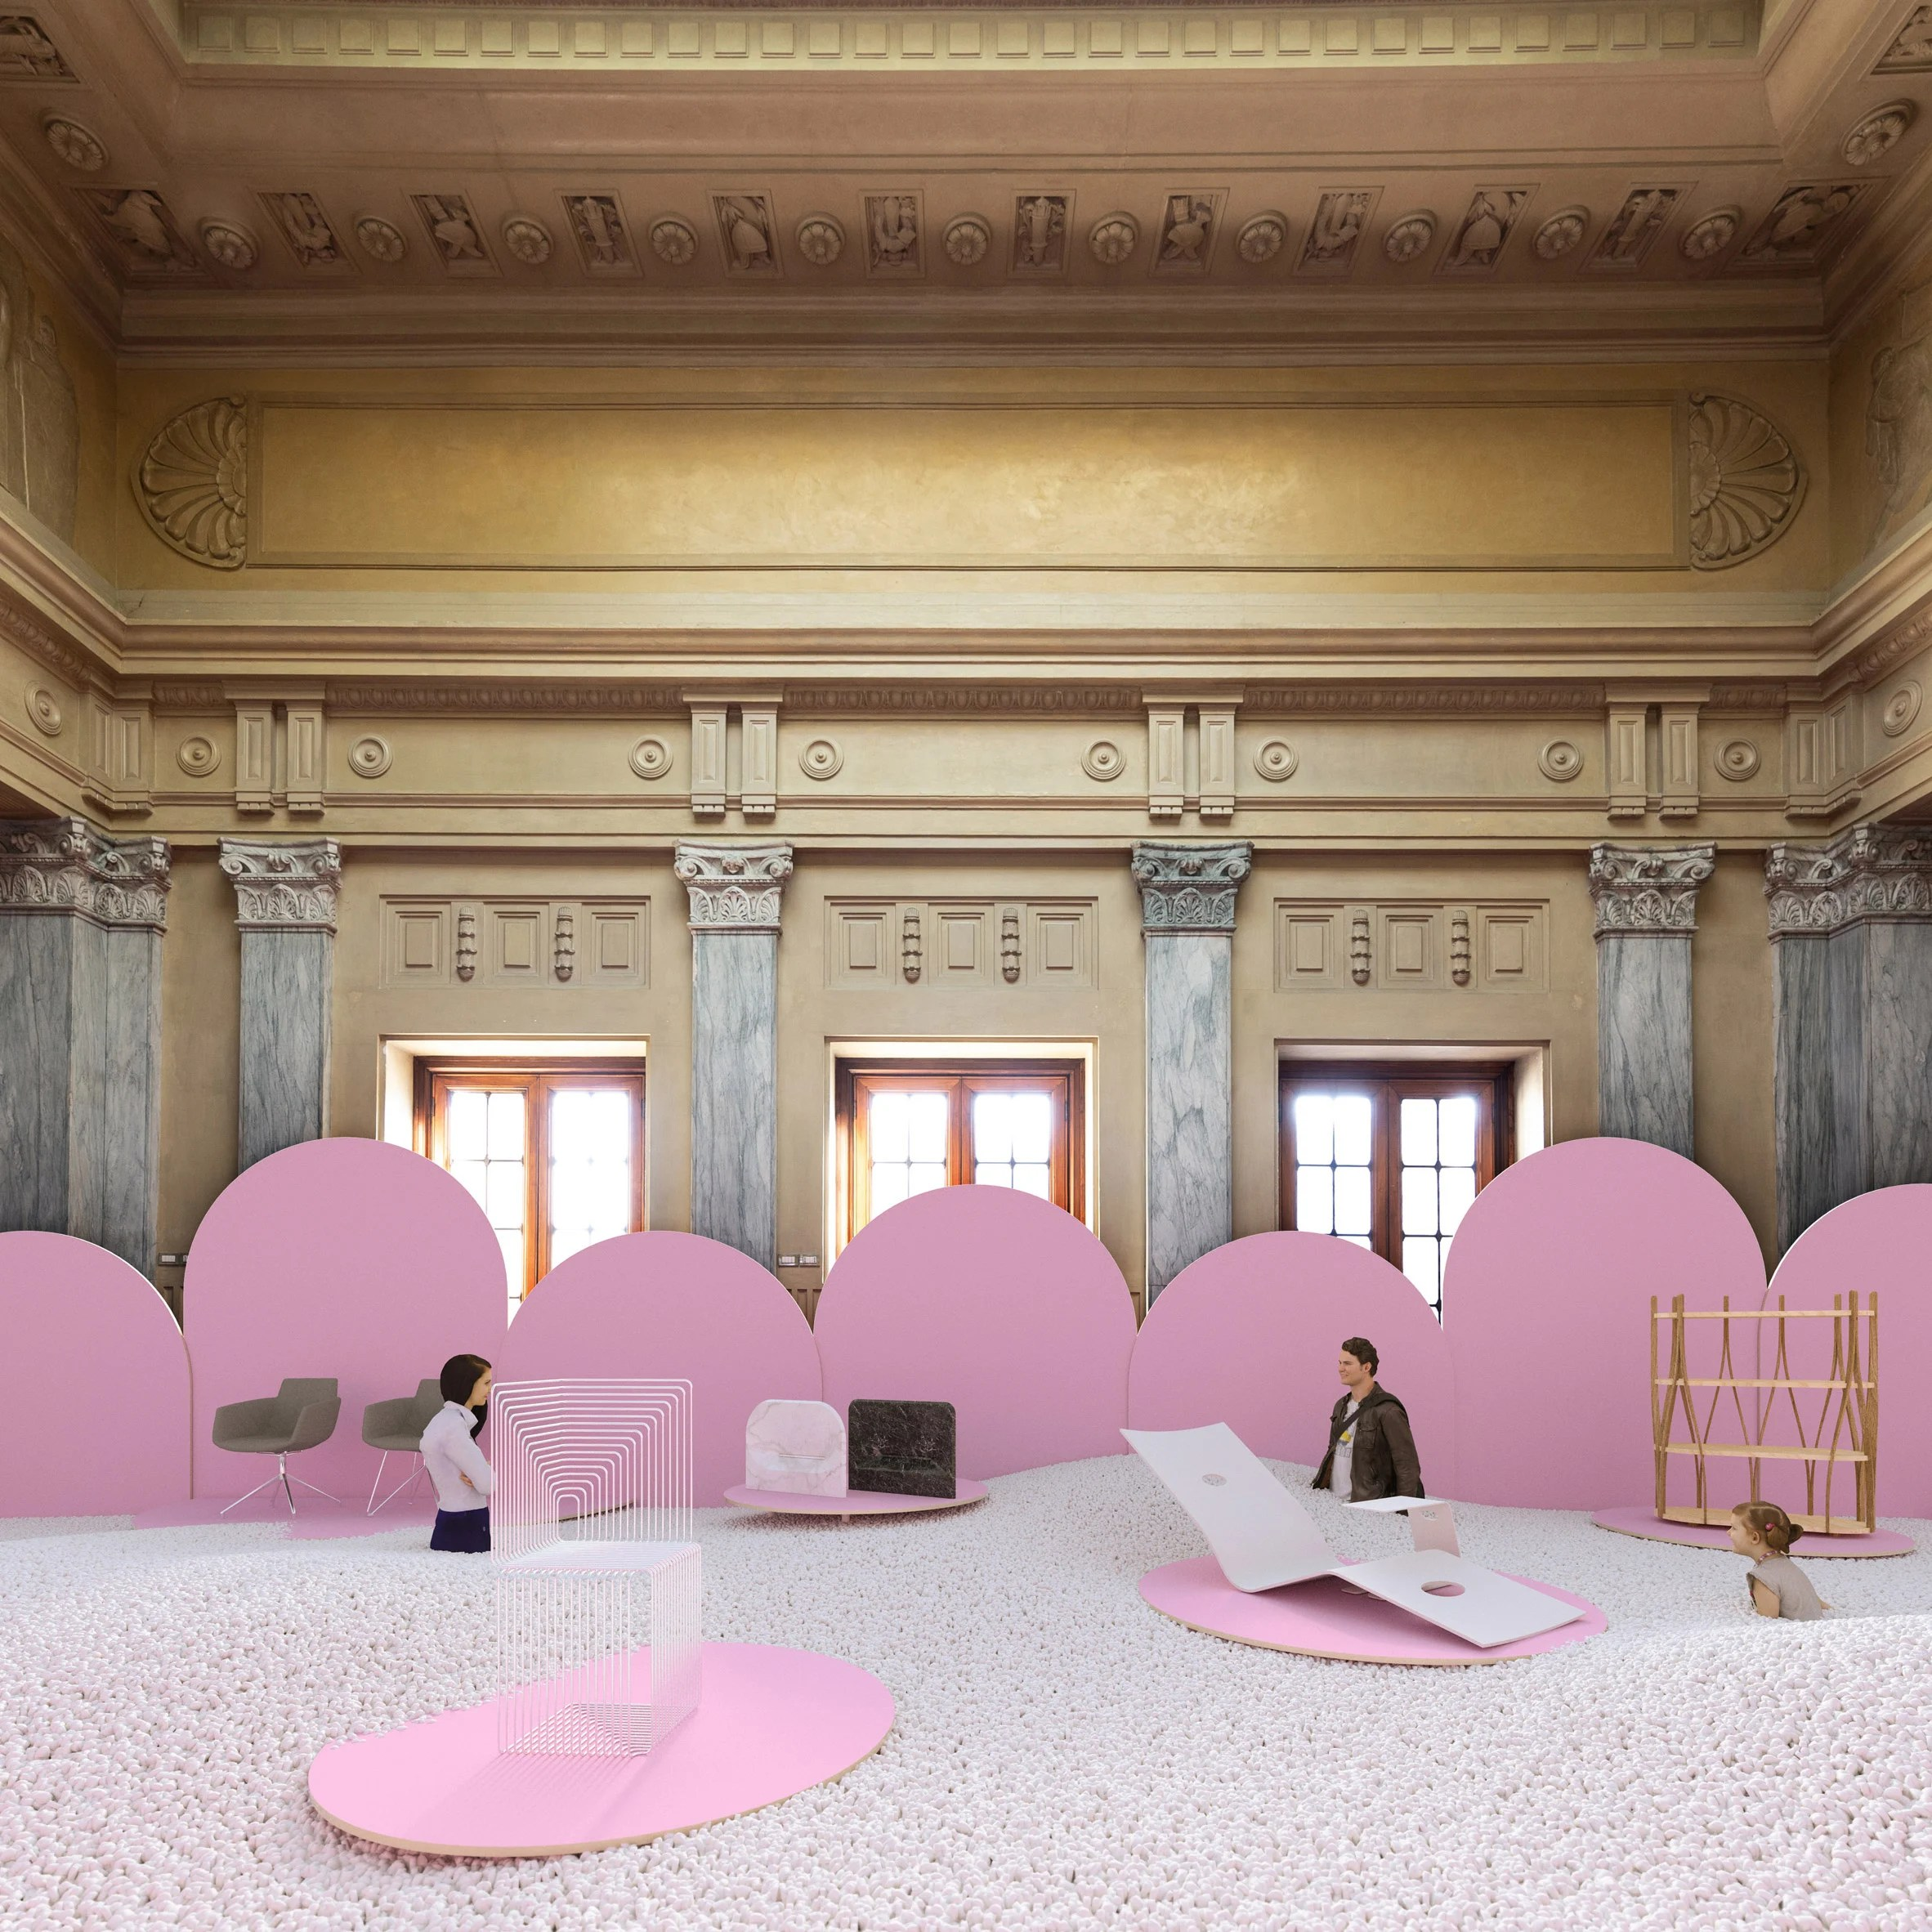 Milan design week guide: Pleasure & Treasure by Advantage Austria